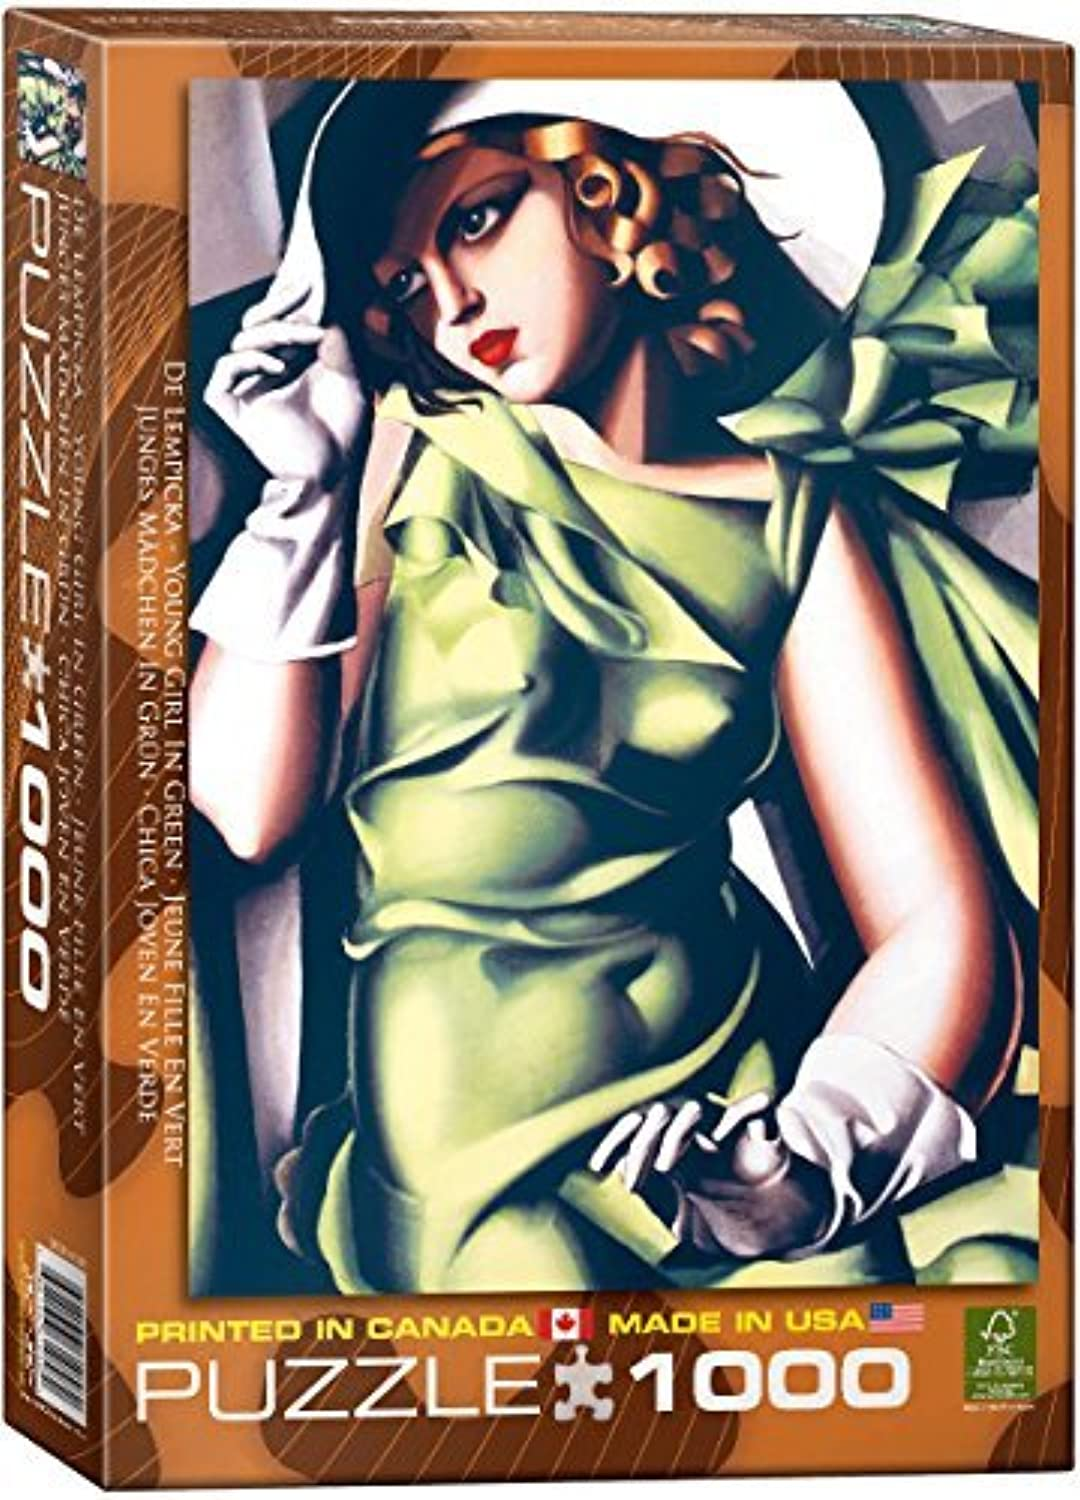 EuroGraphics Young Girl in Grün by Tamara de Lempicka 1000 Piece Puzzle by EuroGraphics